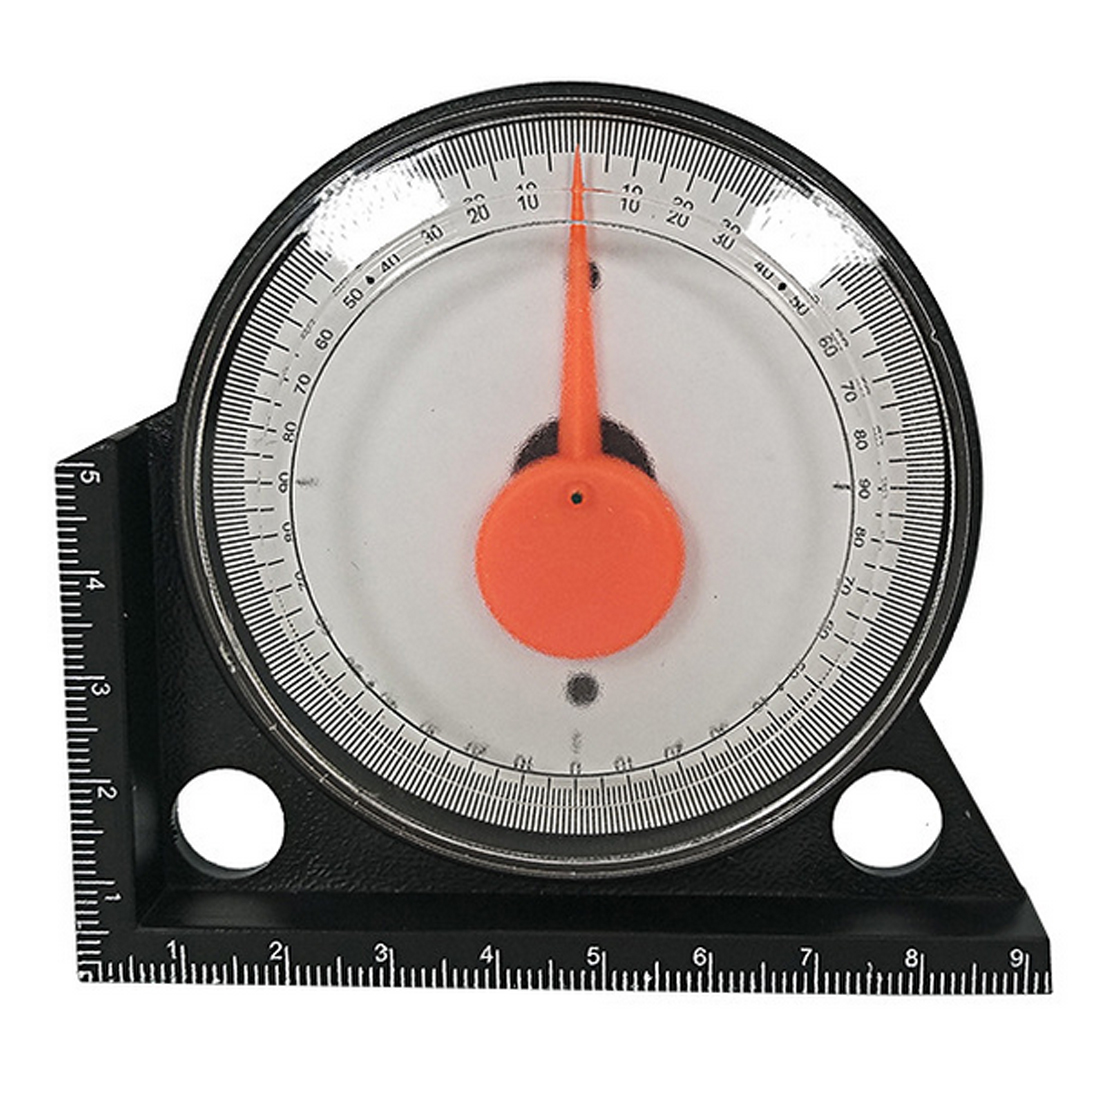 High Precision Mini Inclinometer Protractor Tilt Level Meter Angle Finder Clinometer Slope Angle Meter With Magnetic Base